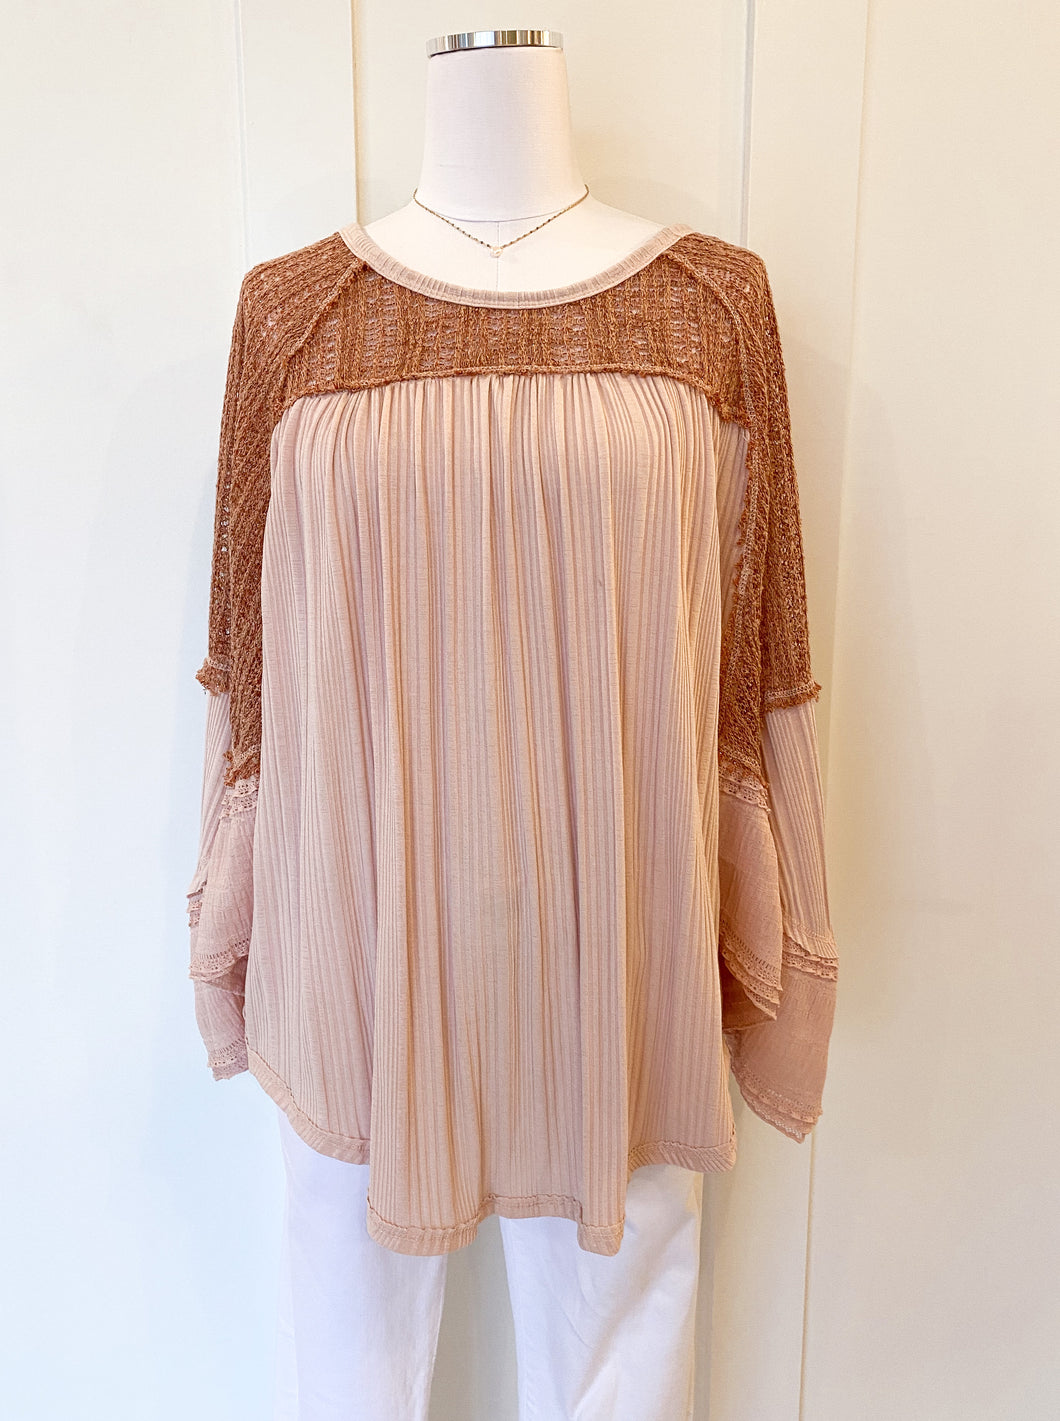 melodies textured top